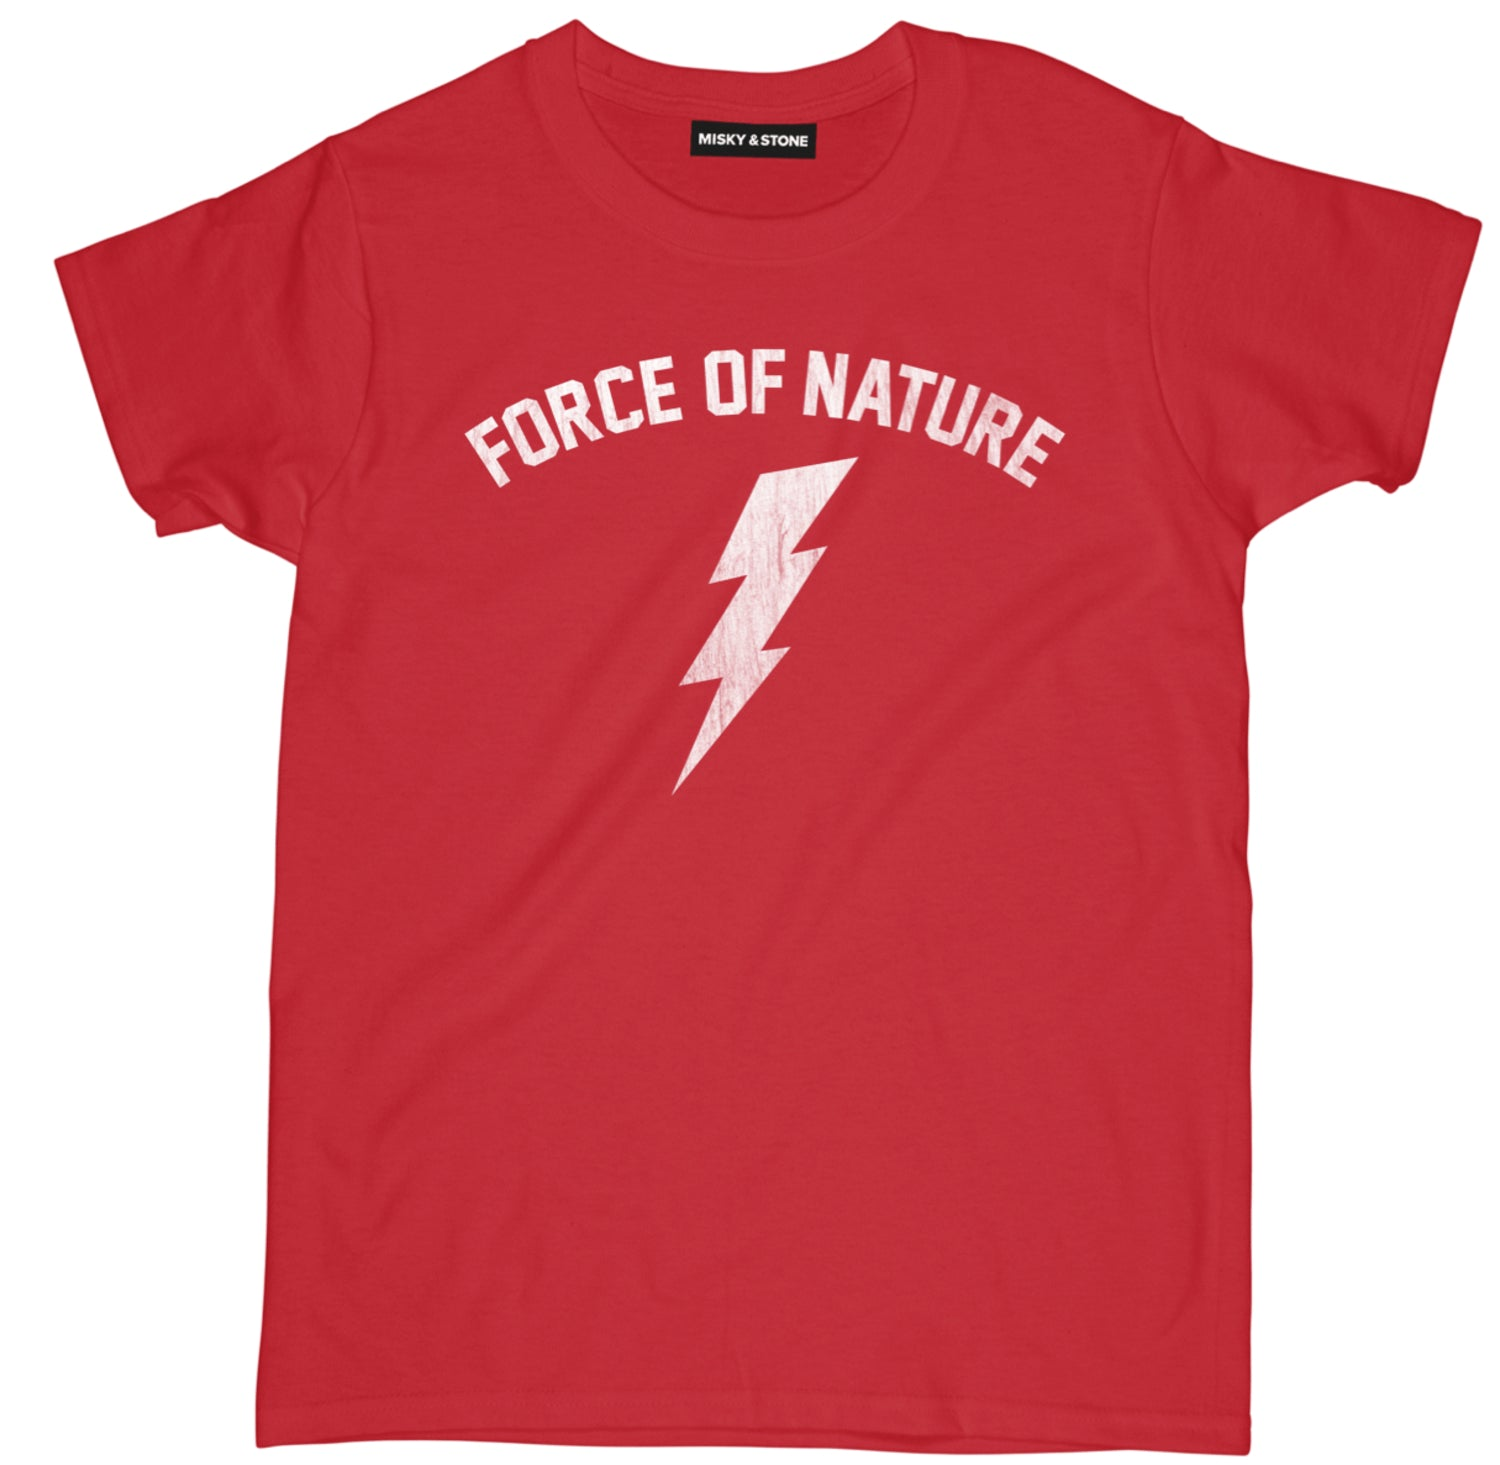 force of nature shirt, camping shirts, camp shirt, cute camping shirts,